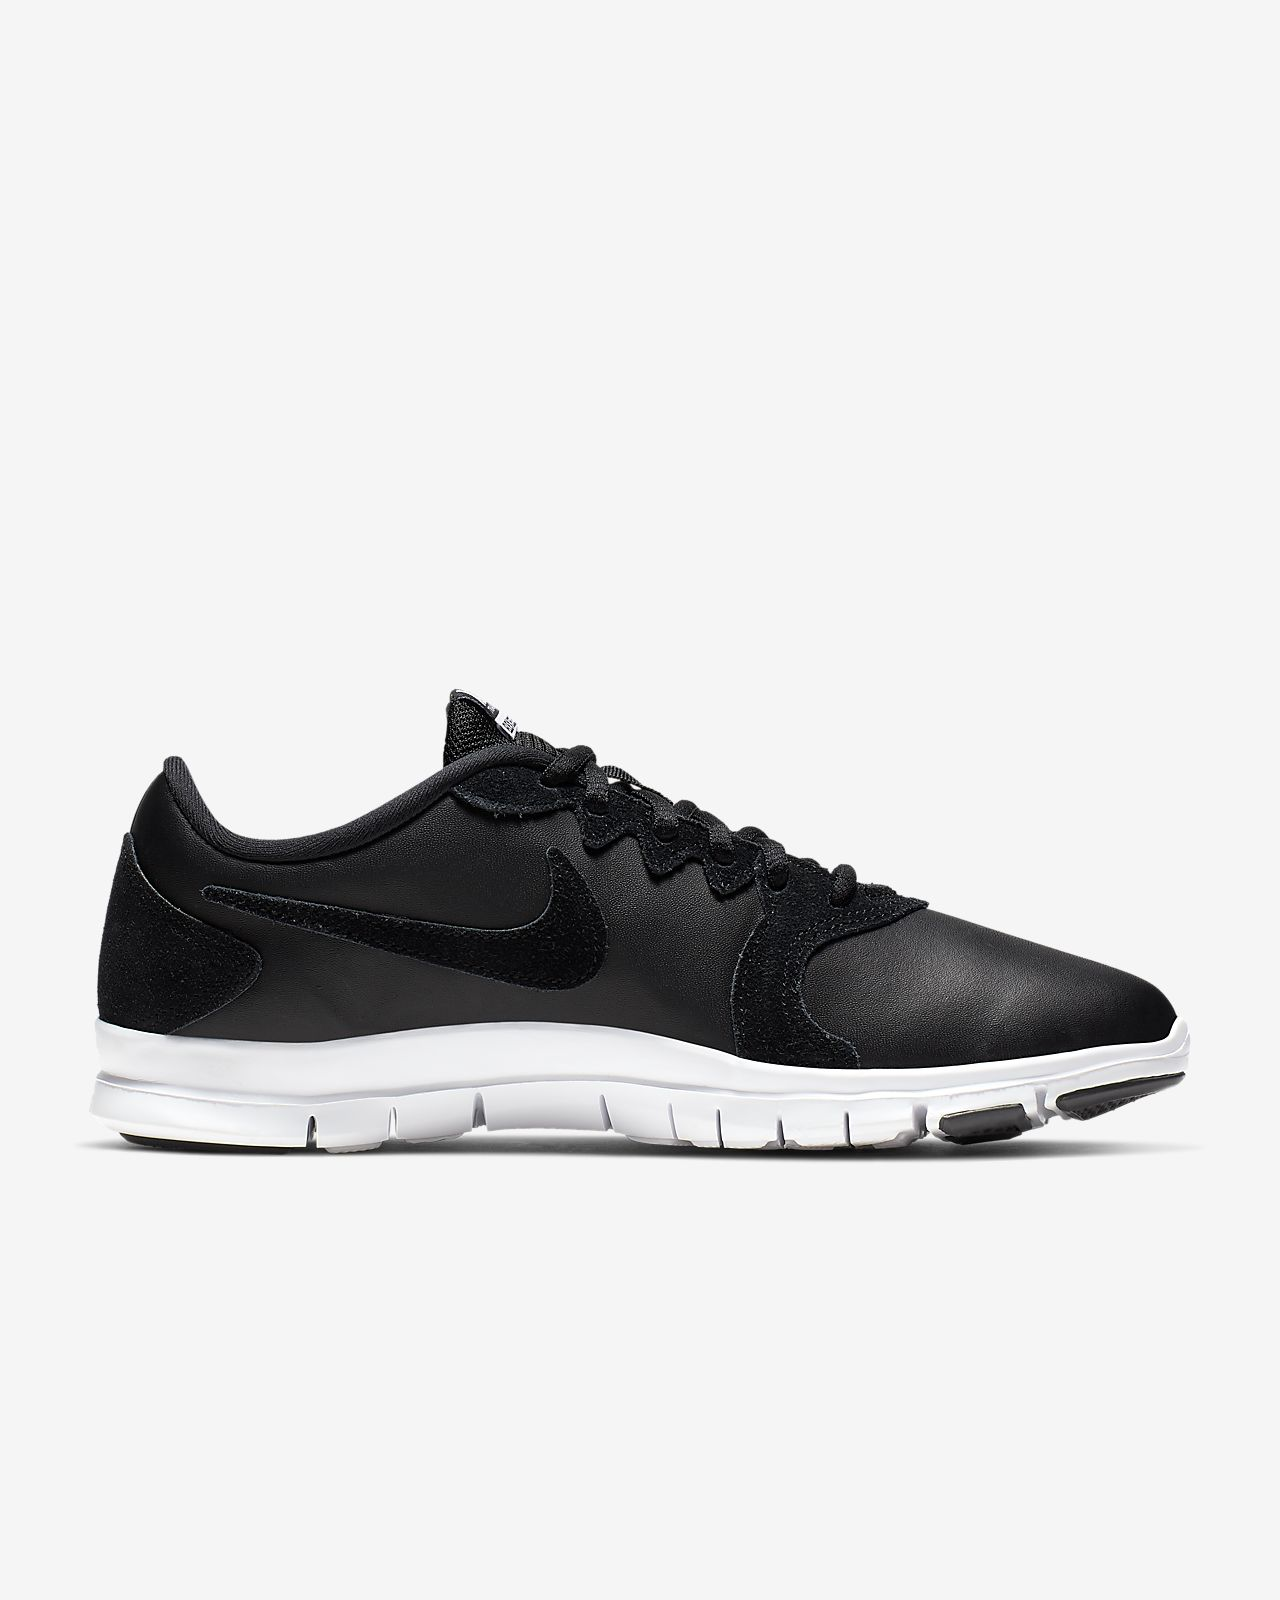 Chaussure de training Nike Flex Essential TR Leather pour Femme